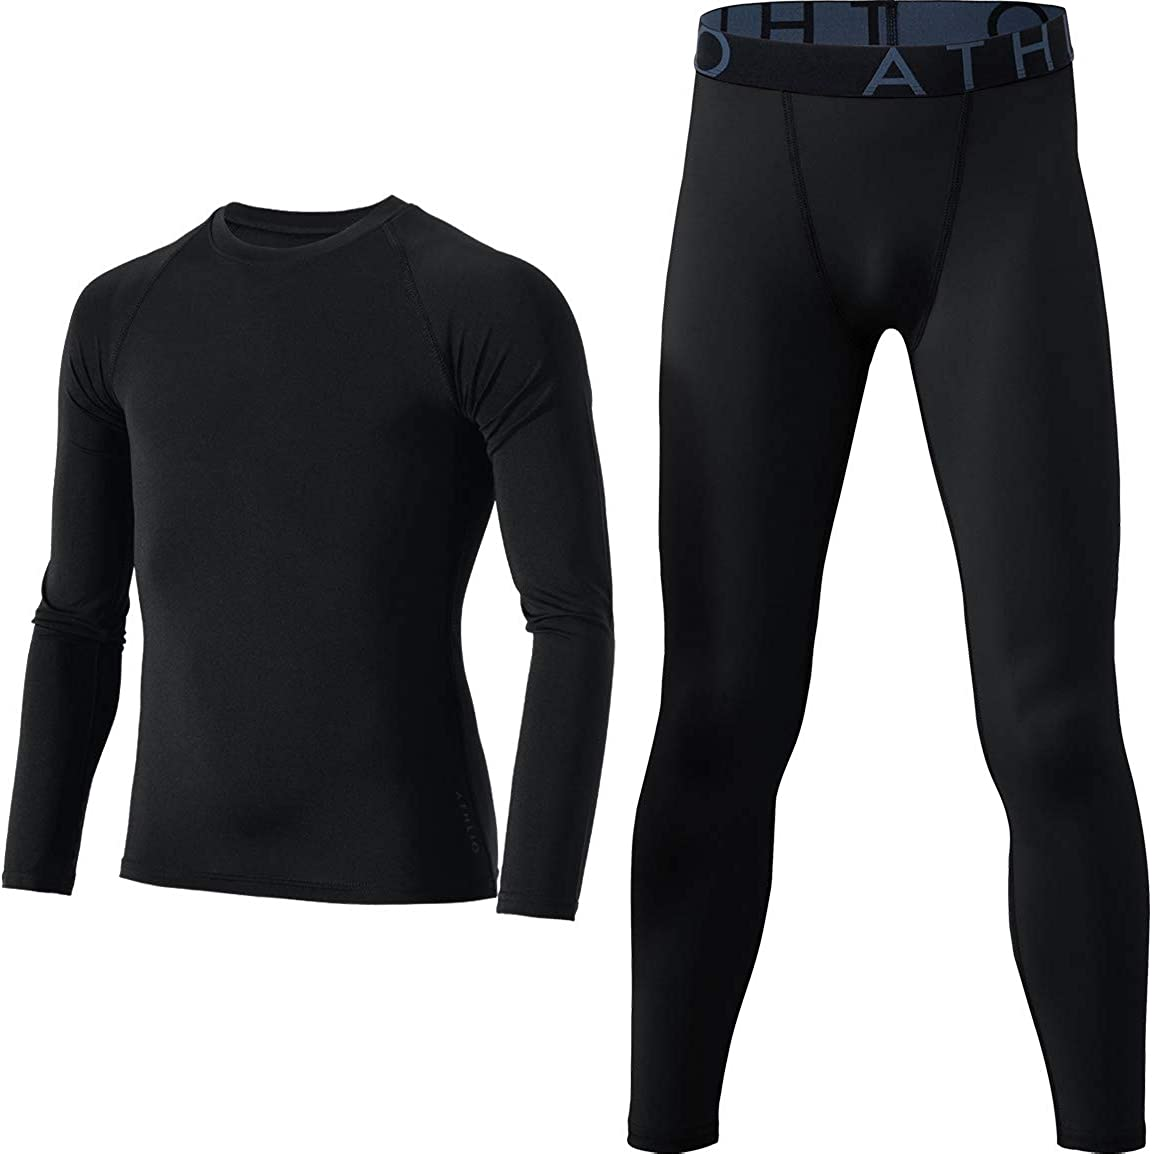 ATHLIO Kid's Compression Running Baselayer Cool Dry Sports Top & Bottom Set: Clothing